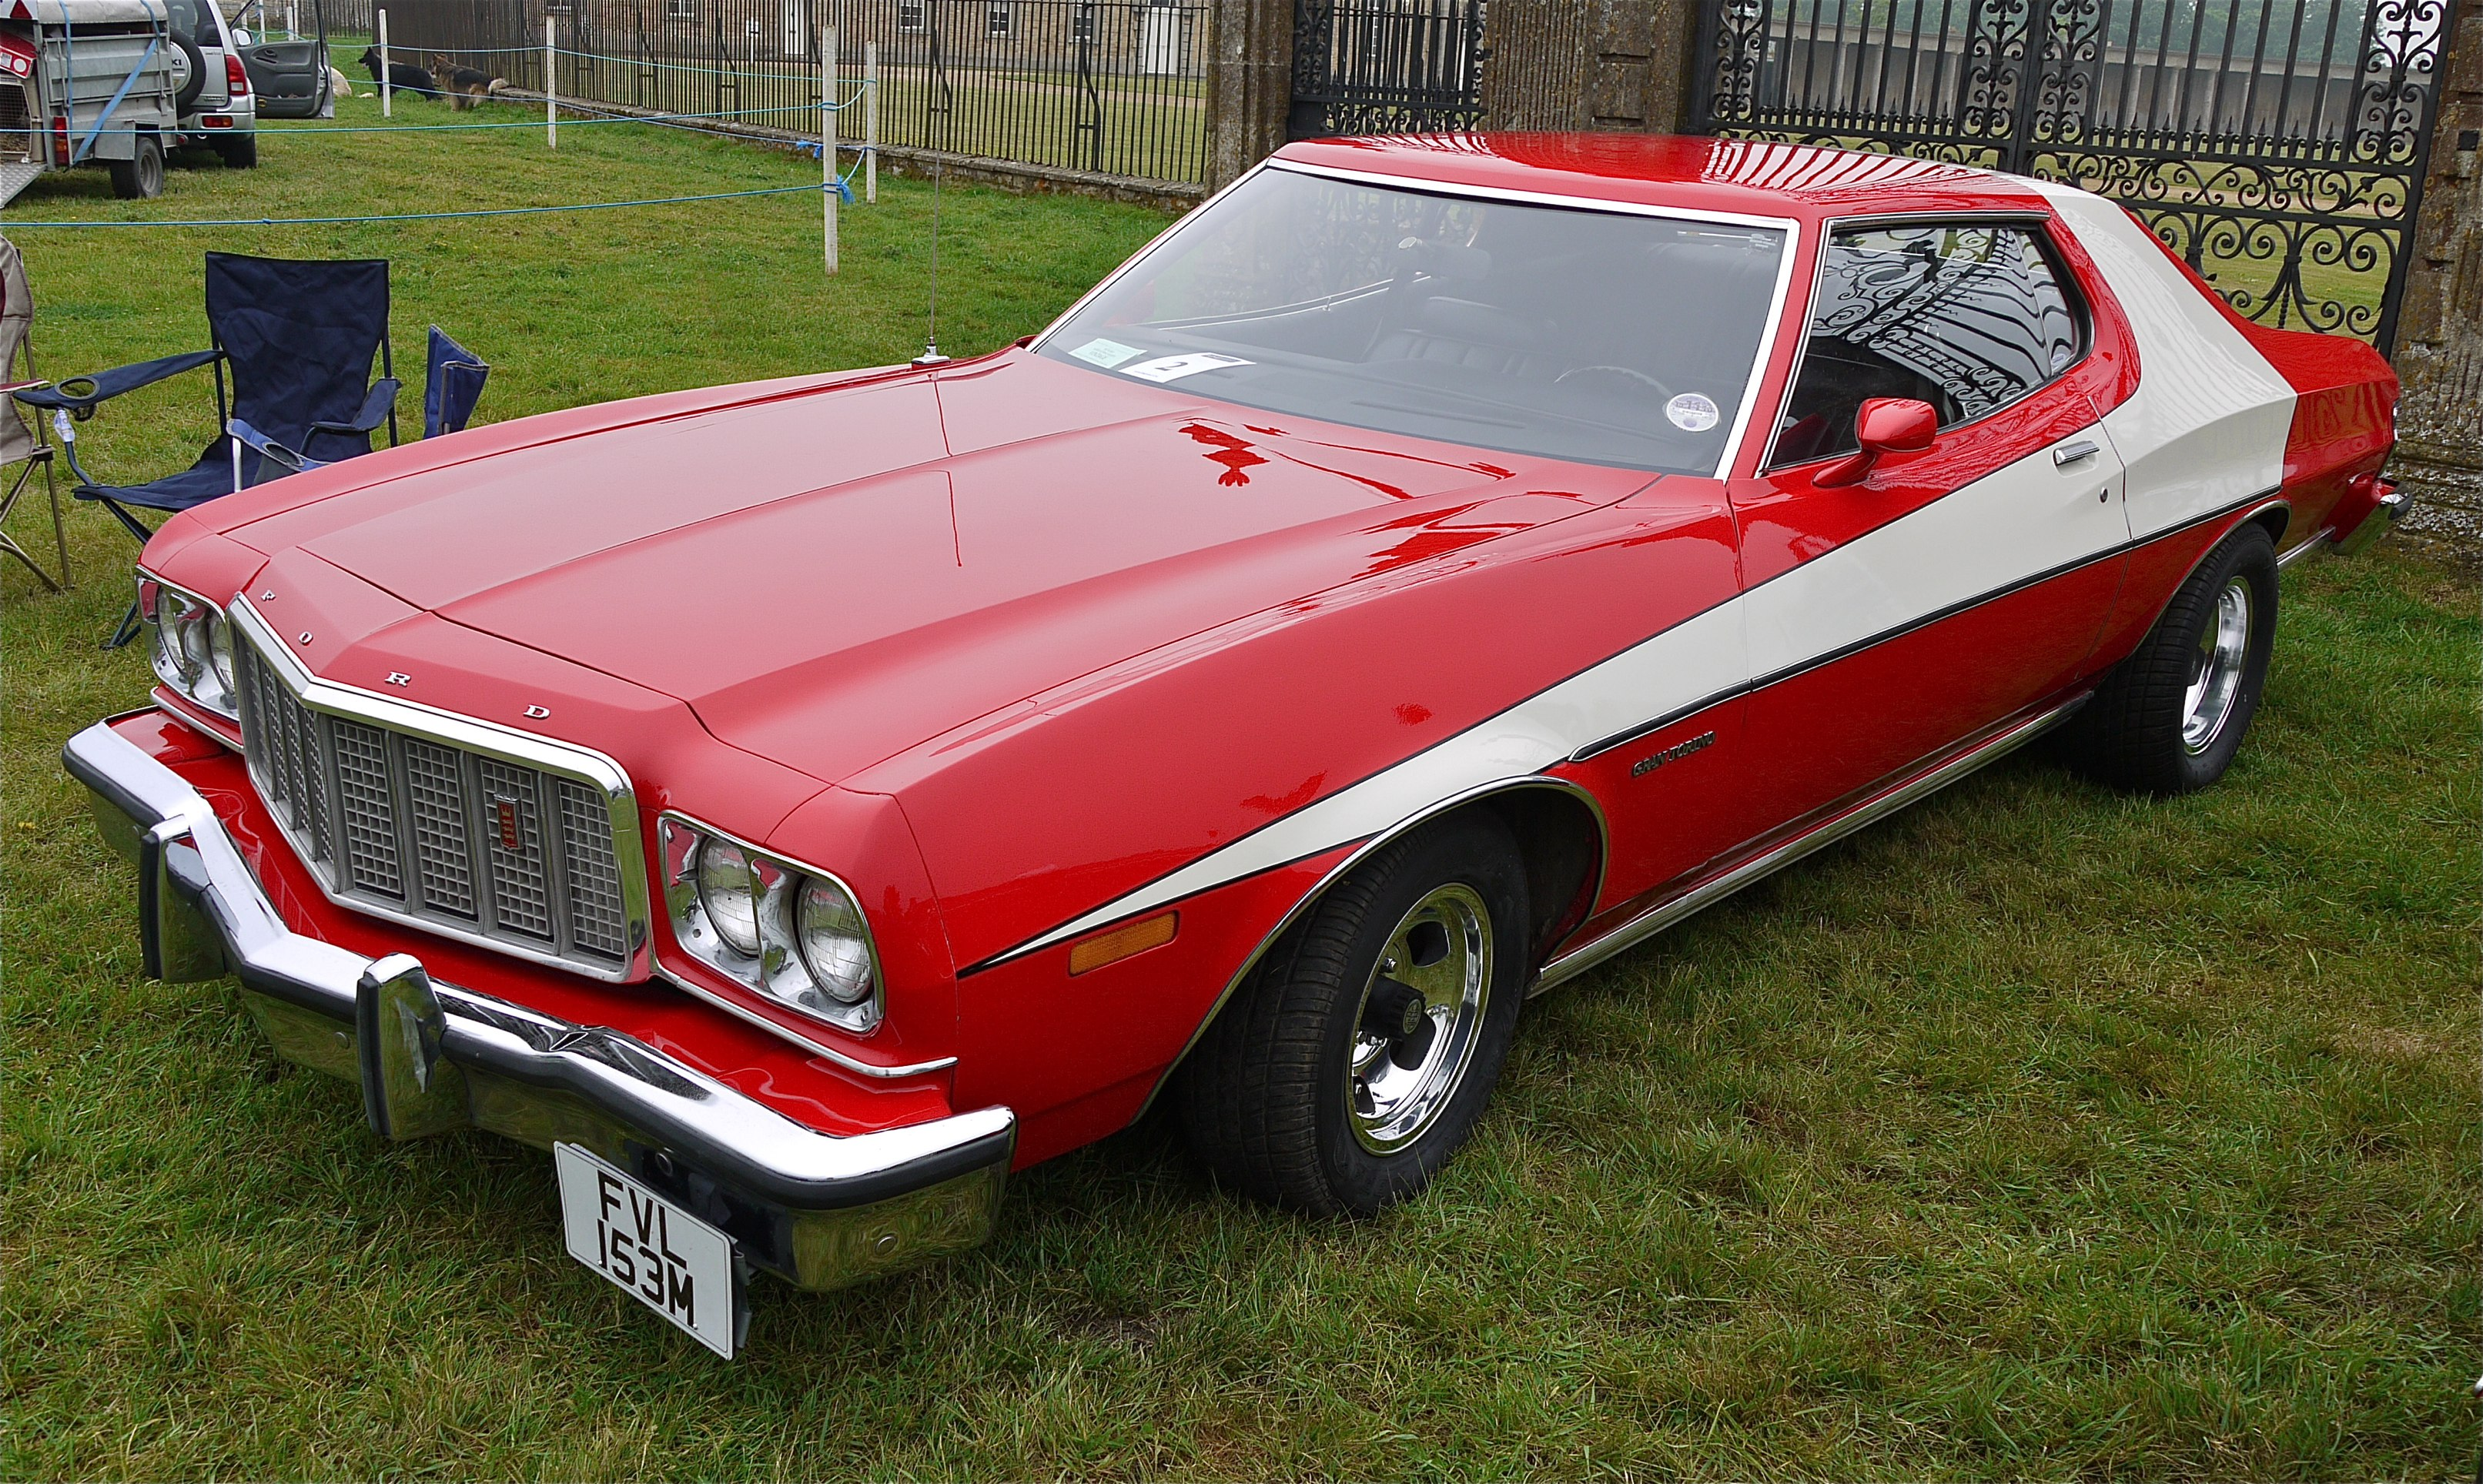 Datei:Ford Gran Torino - Flickr - mick - Lumix.jpg – Wikipedia